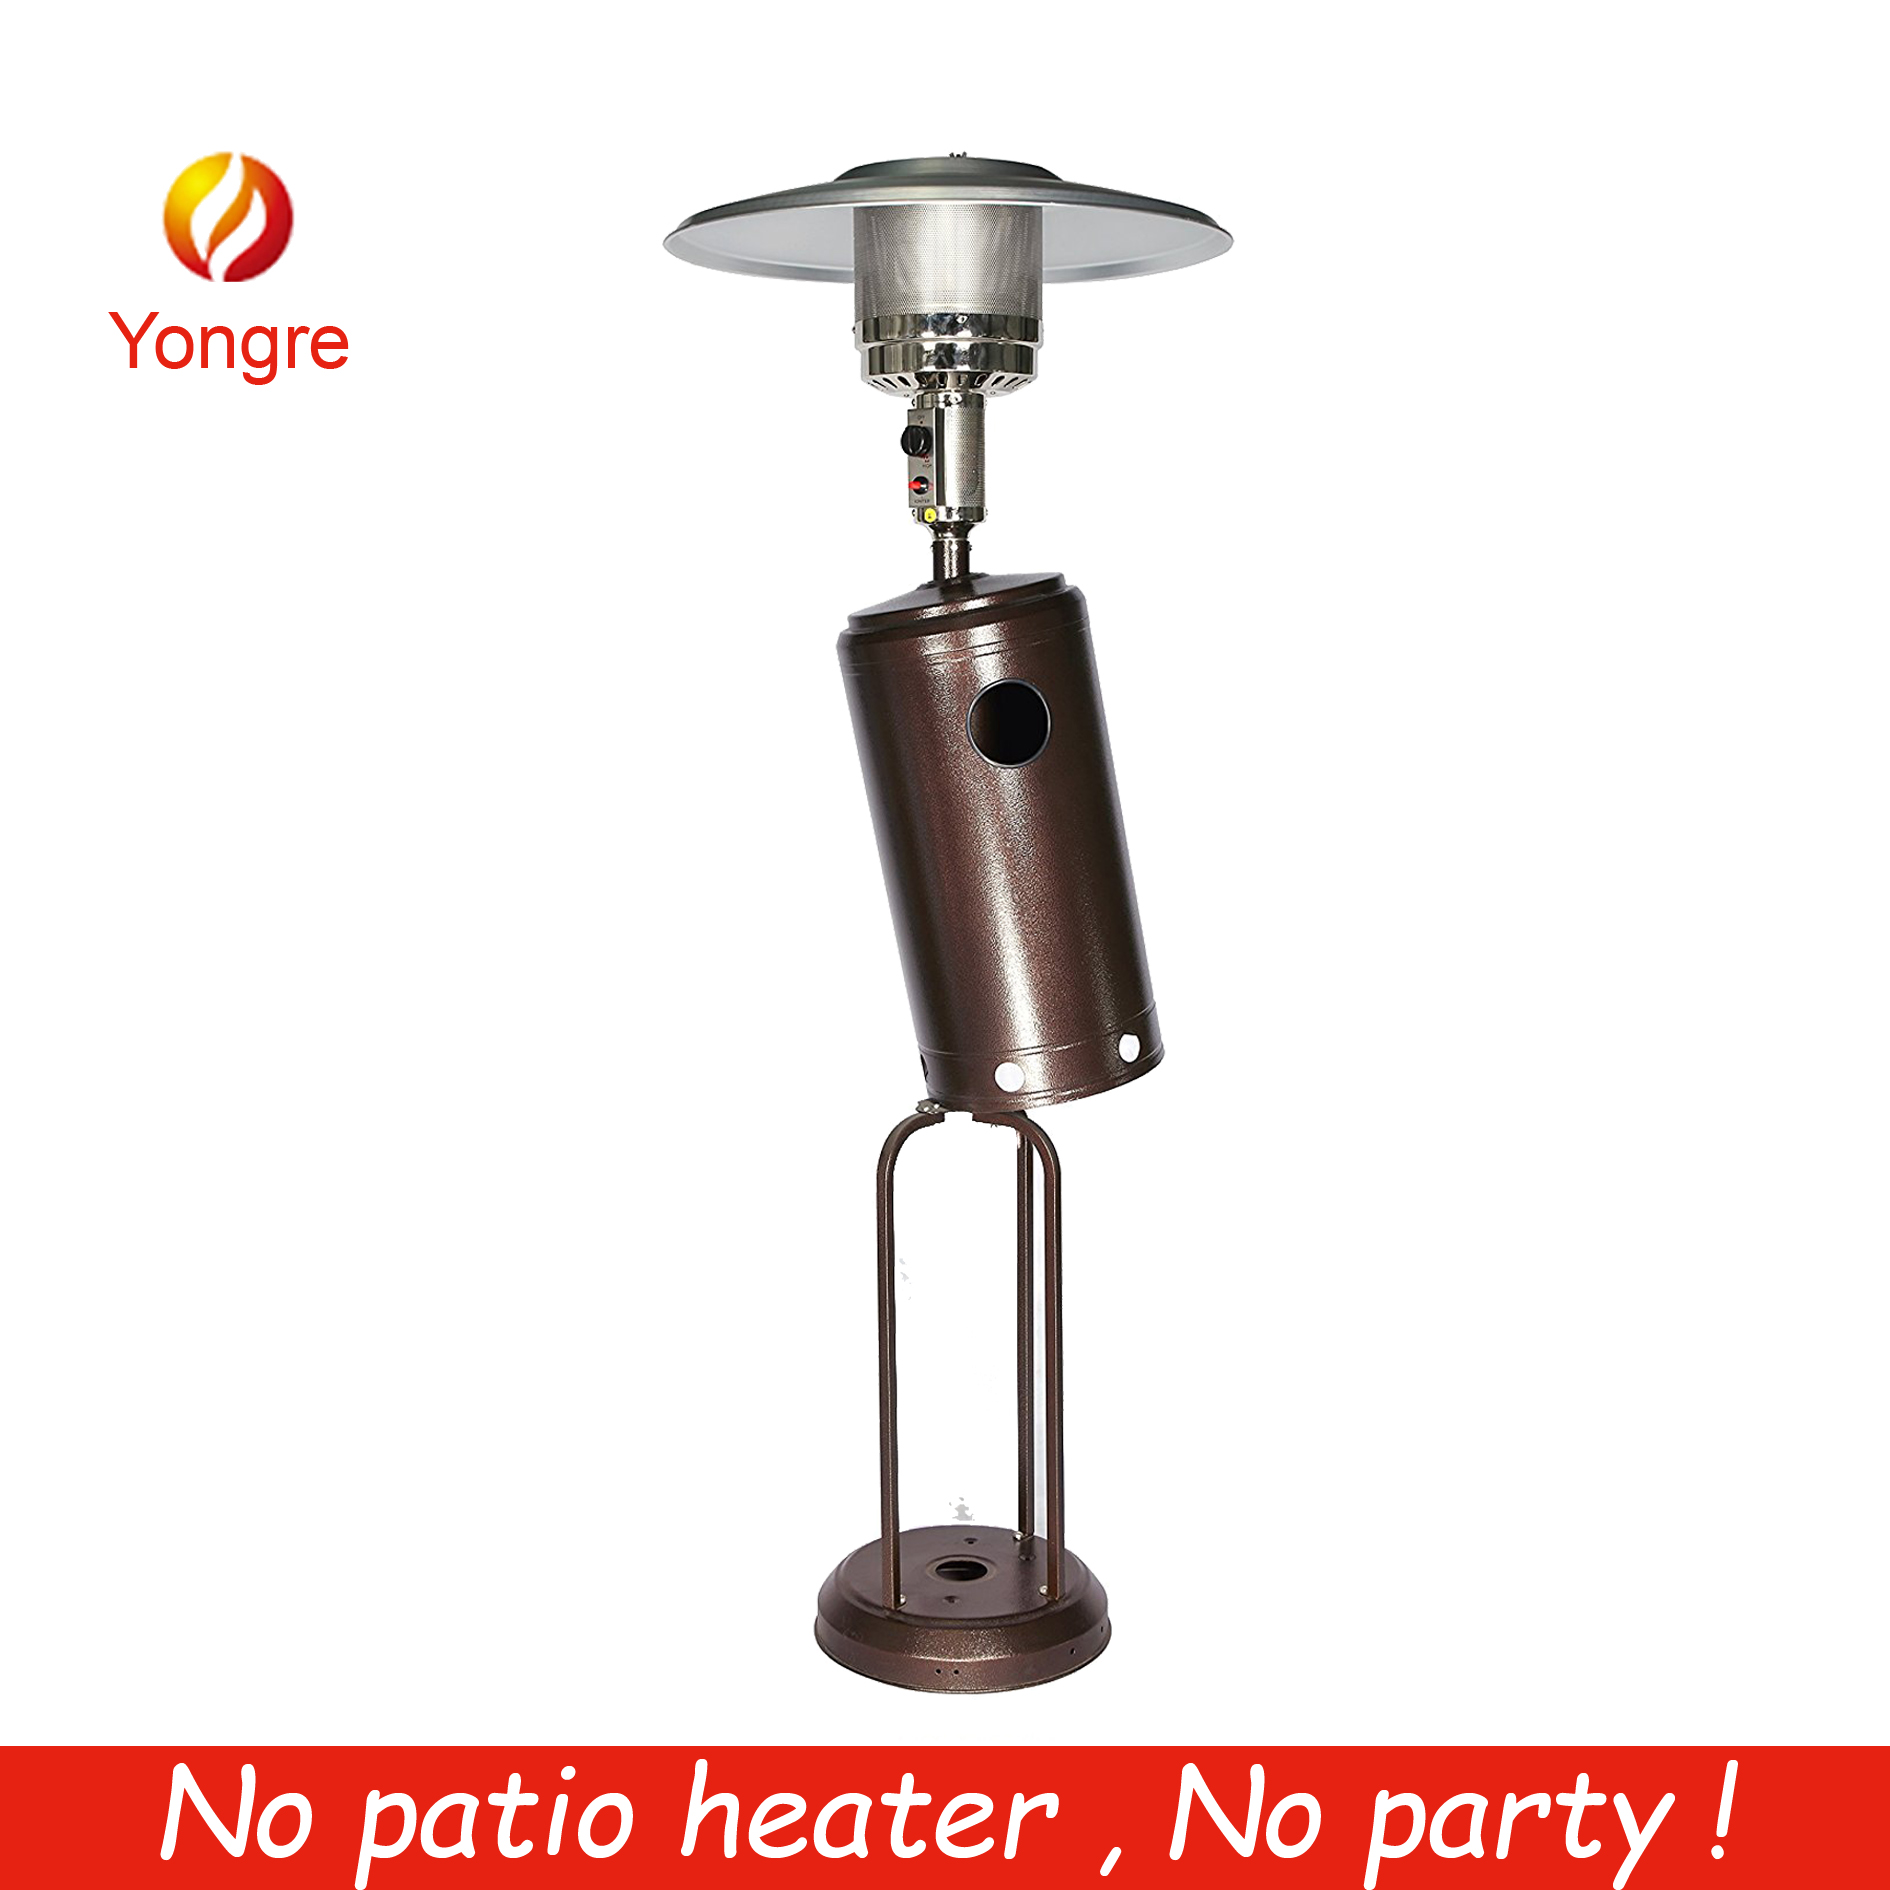 Outside Patio Heater With Cheep Price ...